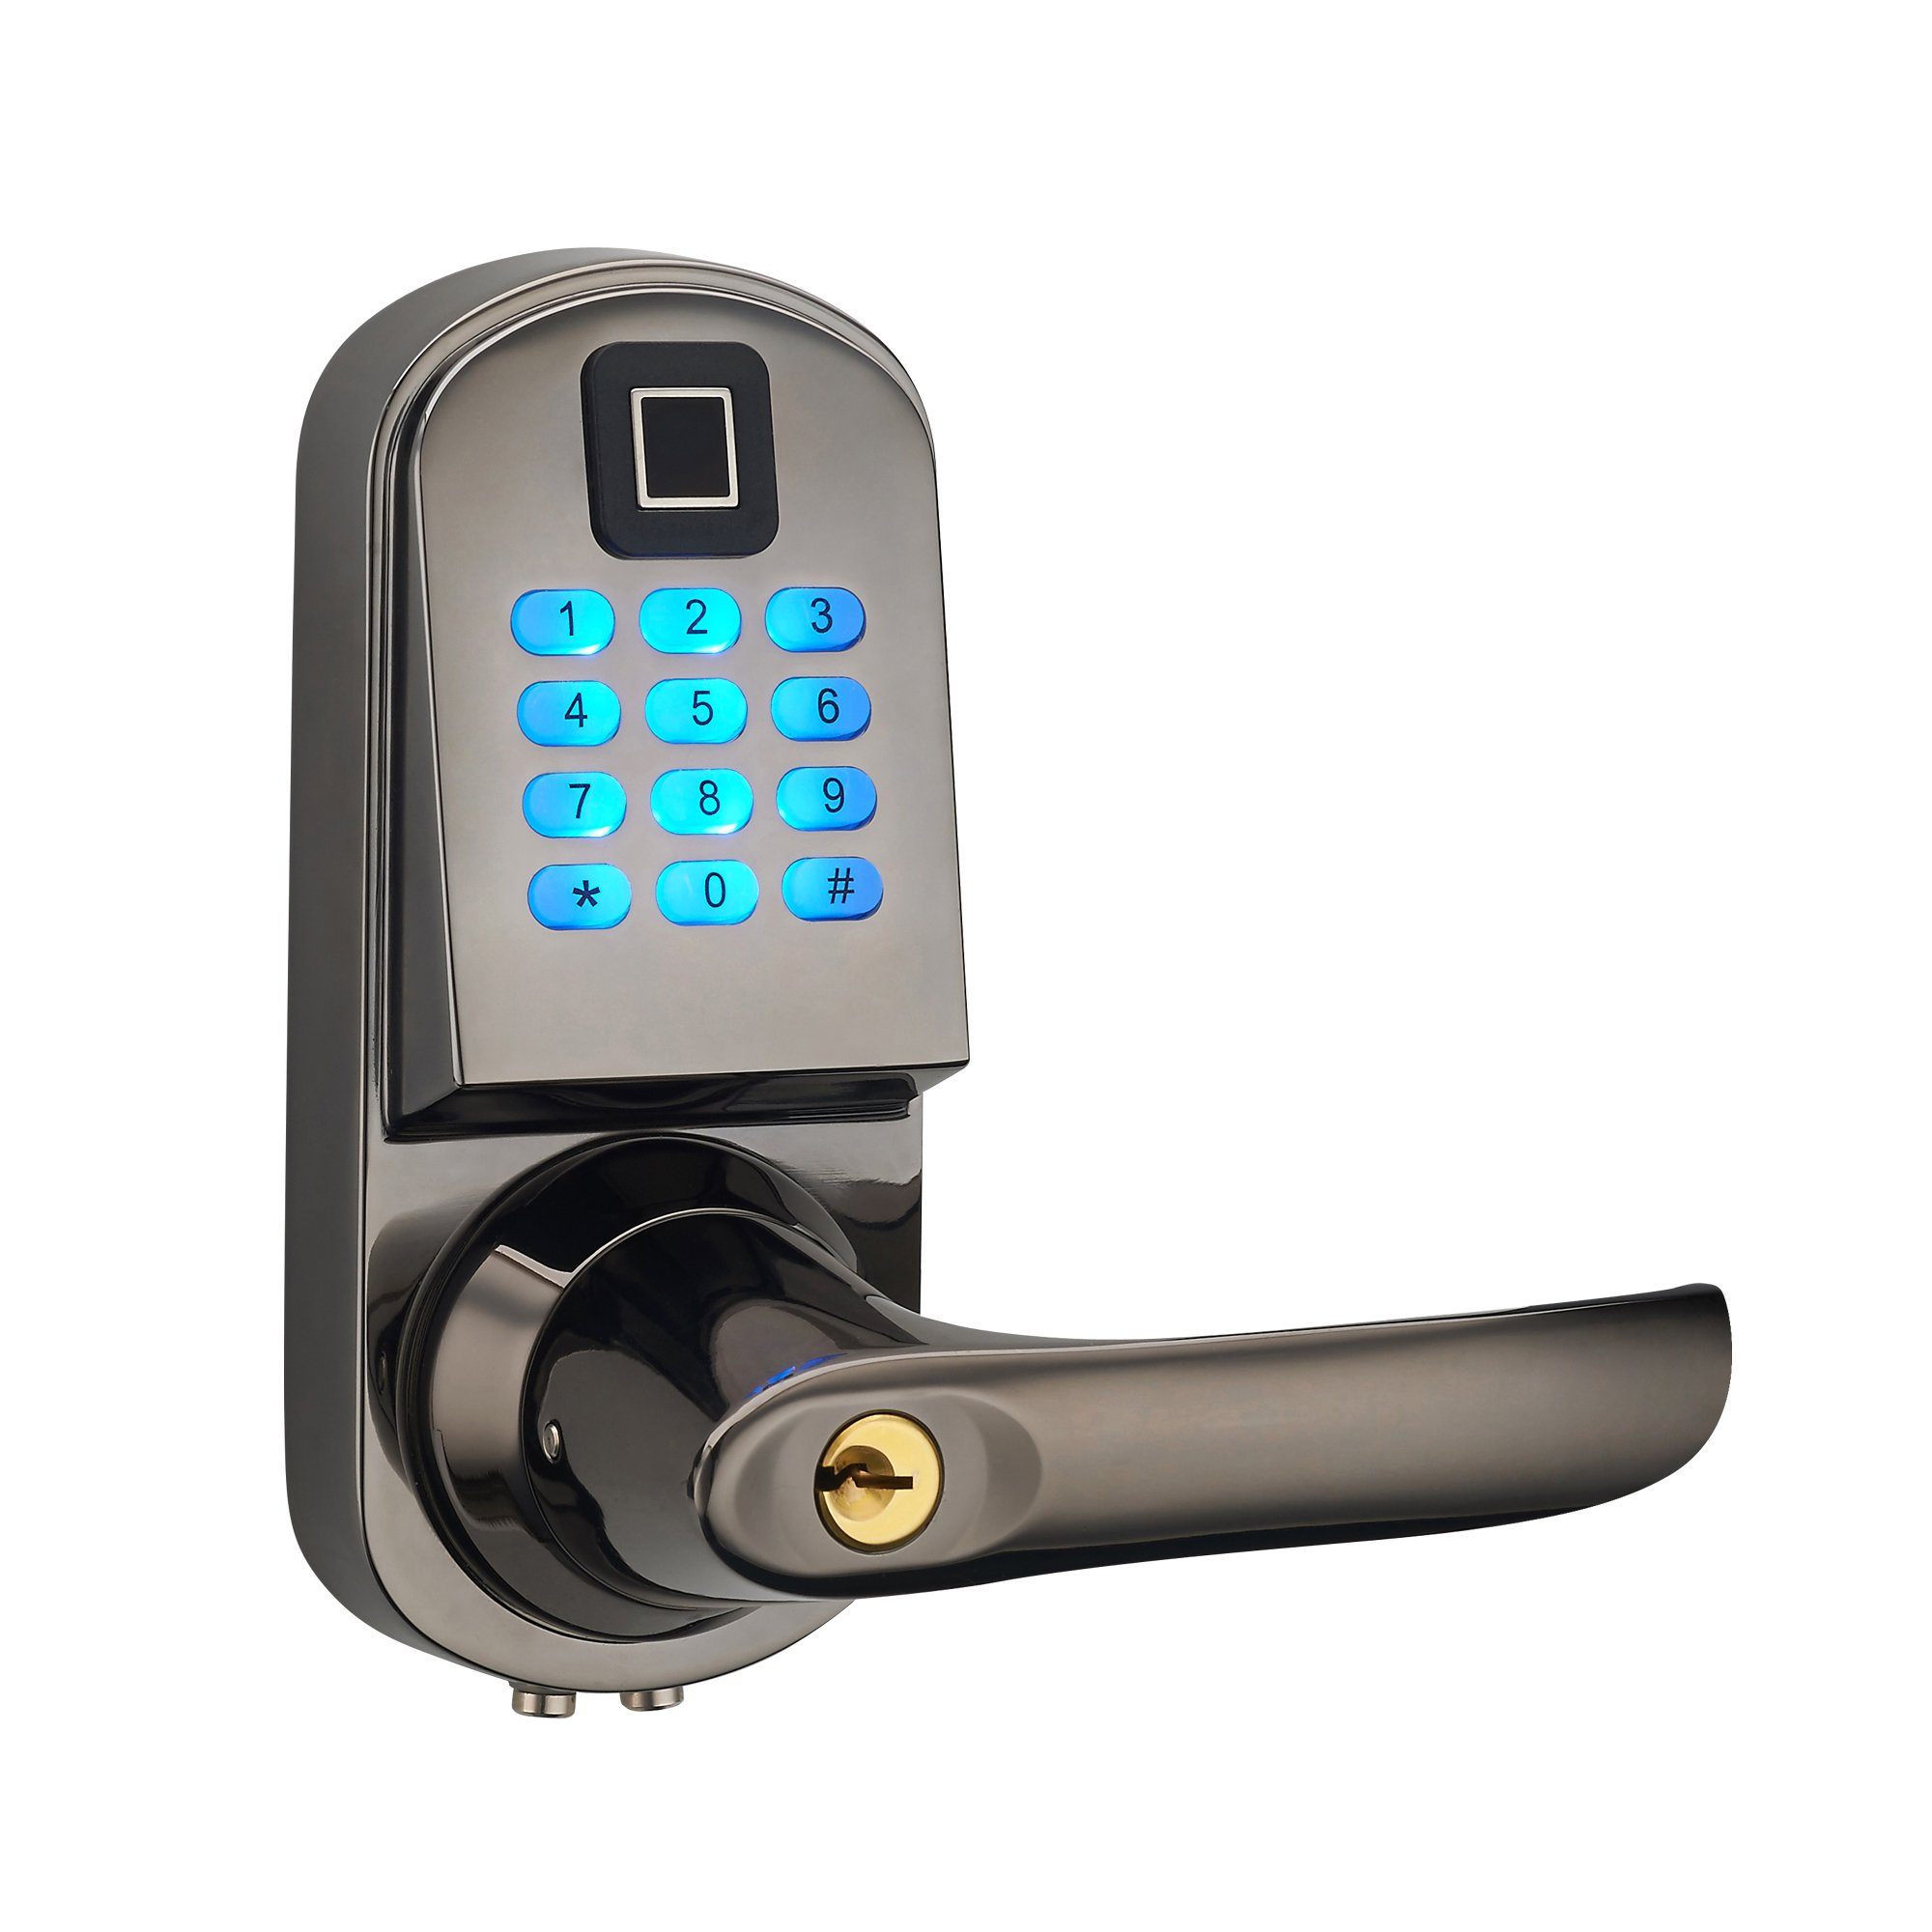 HAIFUAN Right Hand Electronic Keyless Fingerprint Door Lock,Unlock With Code, Fingerprint, And Mechanical Key (HFAS200FV-R) by HAIFUAN